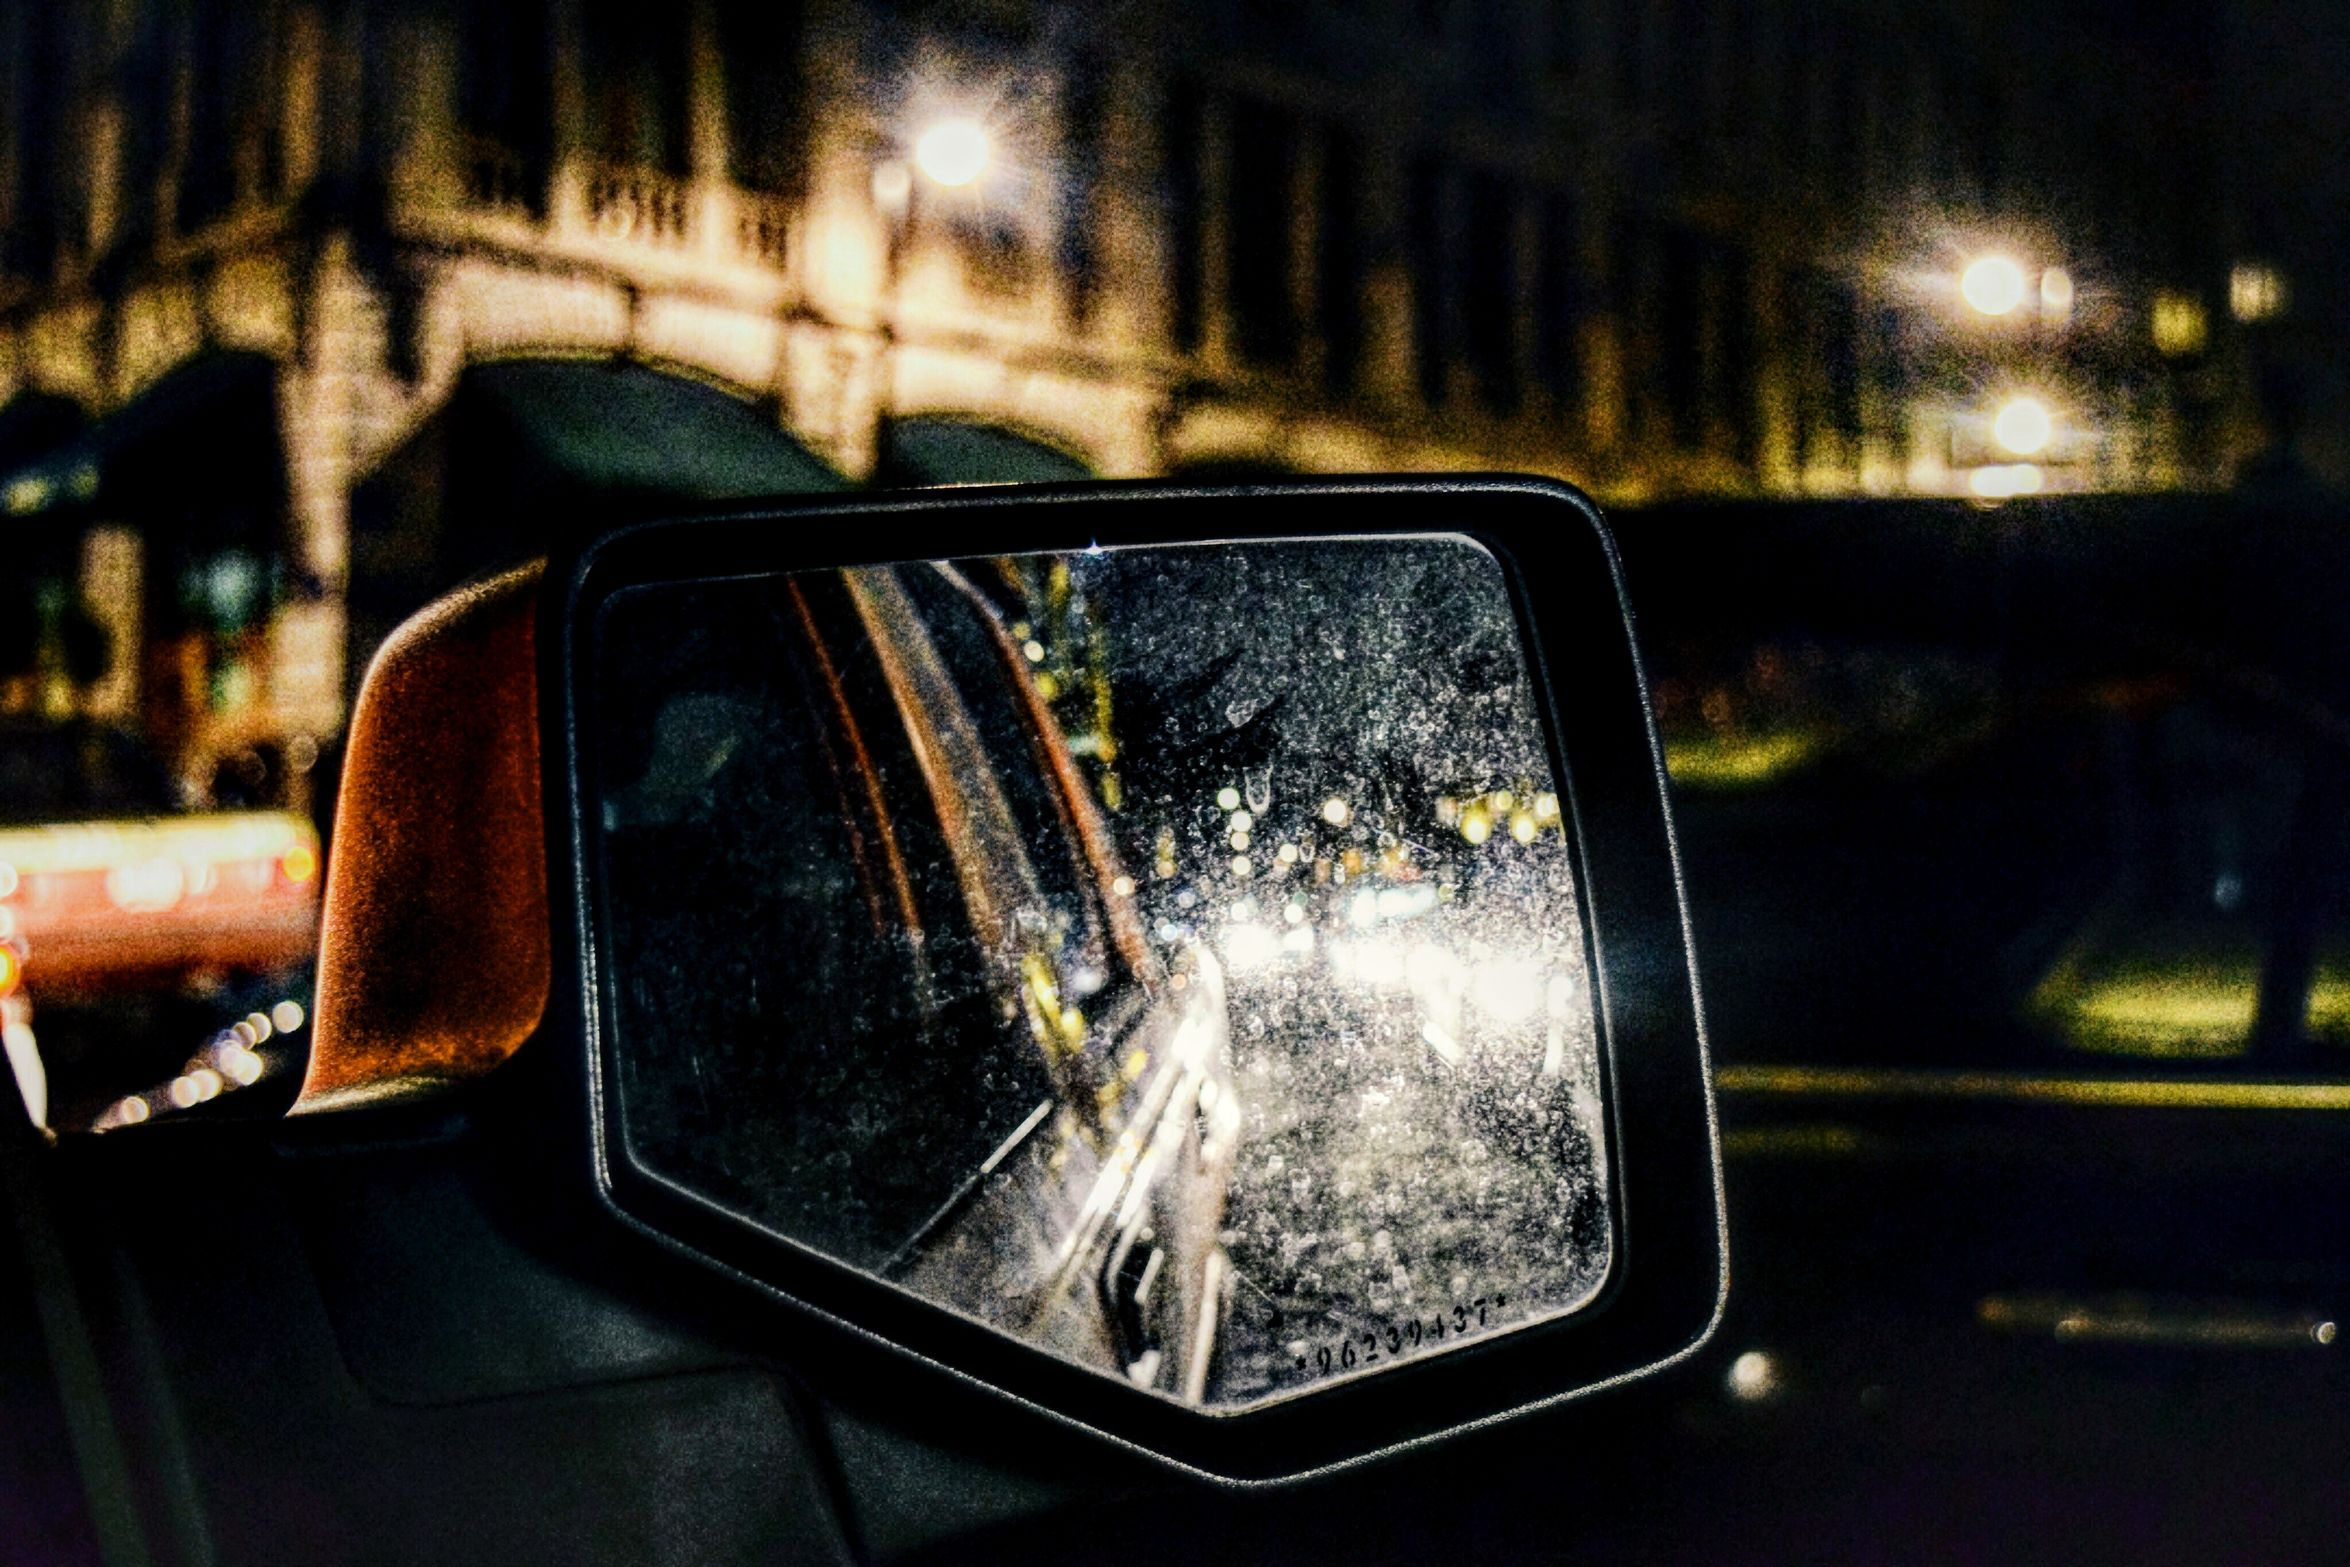 Transportation Mode Of Transport Car Transportation Illuminated City Land Vehicle No People Night Outdoors Close-up Side-view Mirror Vehicle Mirror Landscape Photography Mexico Mexico City Mode Of Transport Car